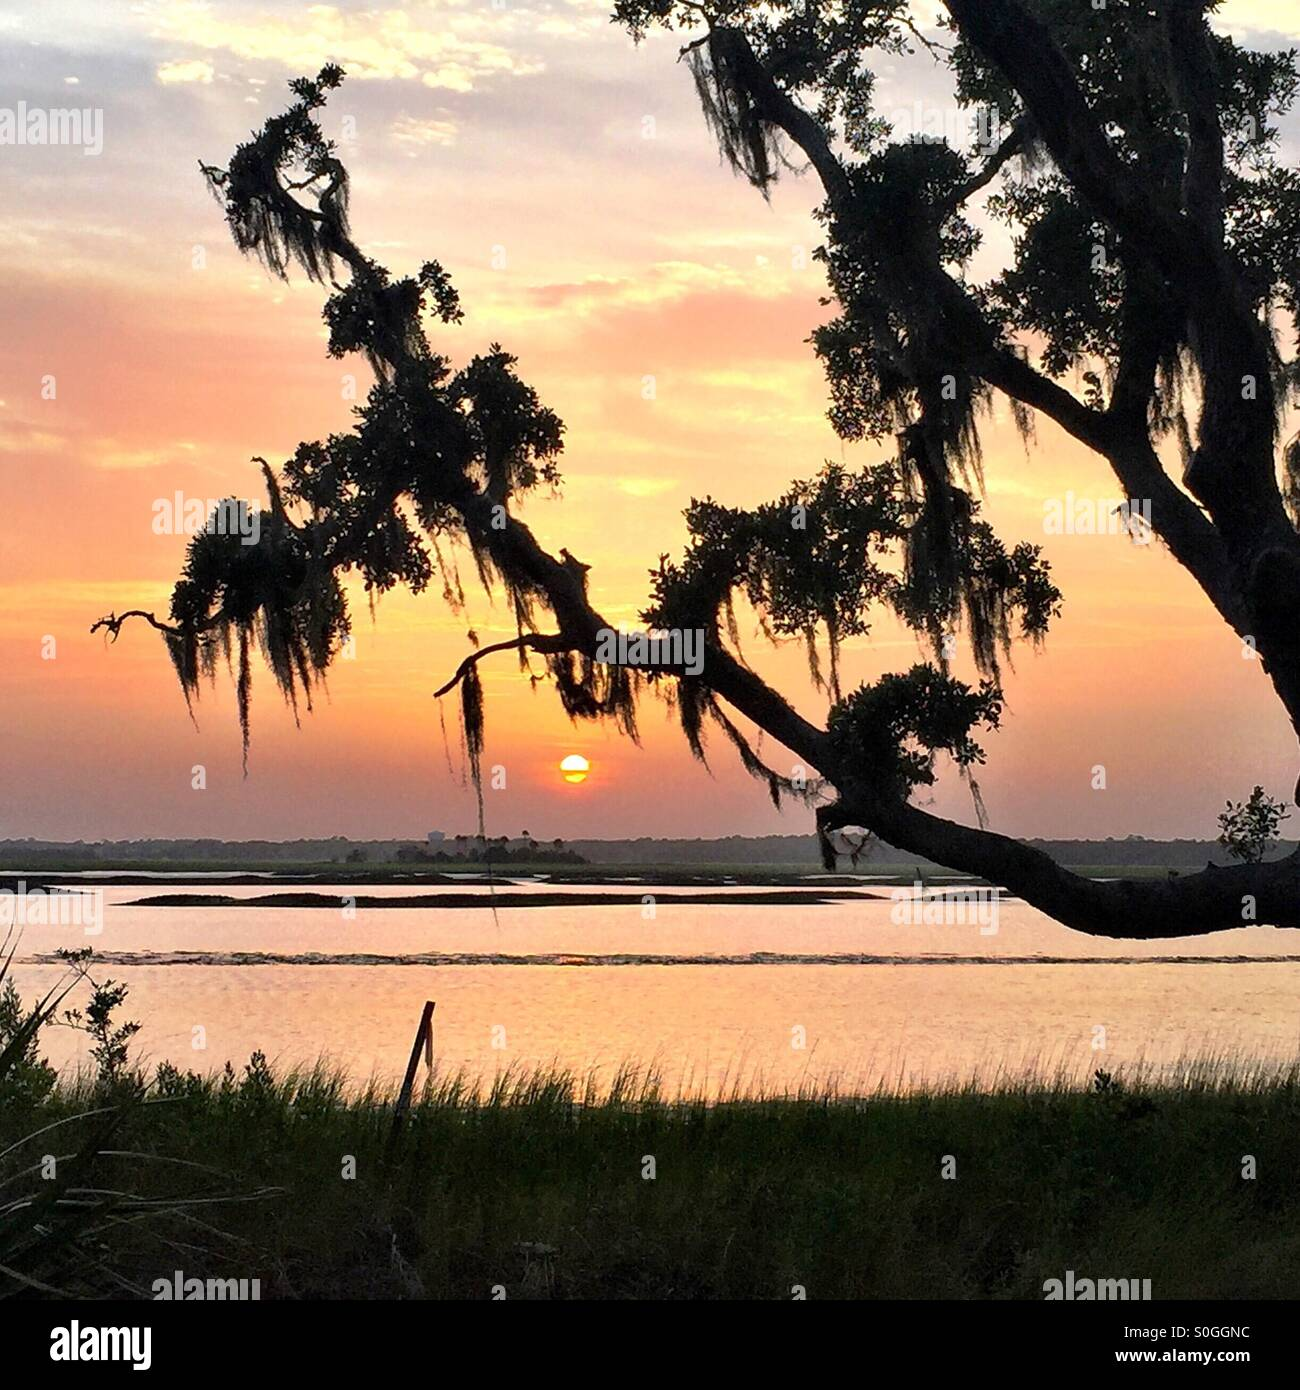 The silhouette of a live oak tree draped with Spanish moss stands out against a beautiful sunset sky in South Carolina. - Stock Image